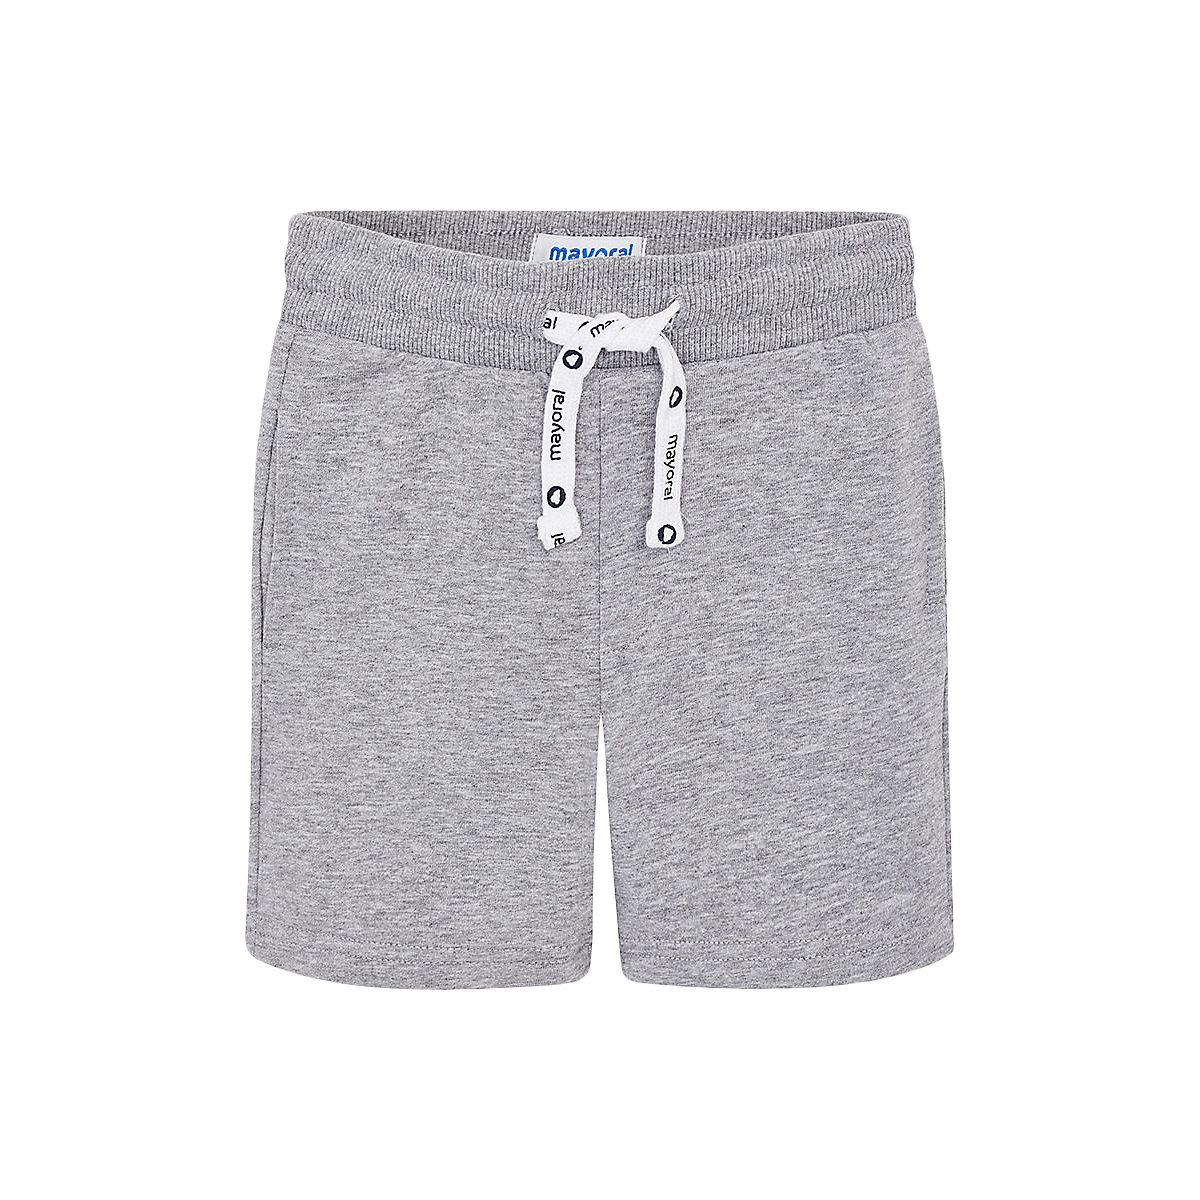 Shorts Mayoral 10692341 Children s Clothing clothes for boys with pockets briefs for kids